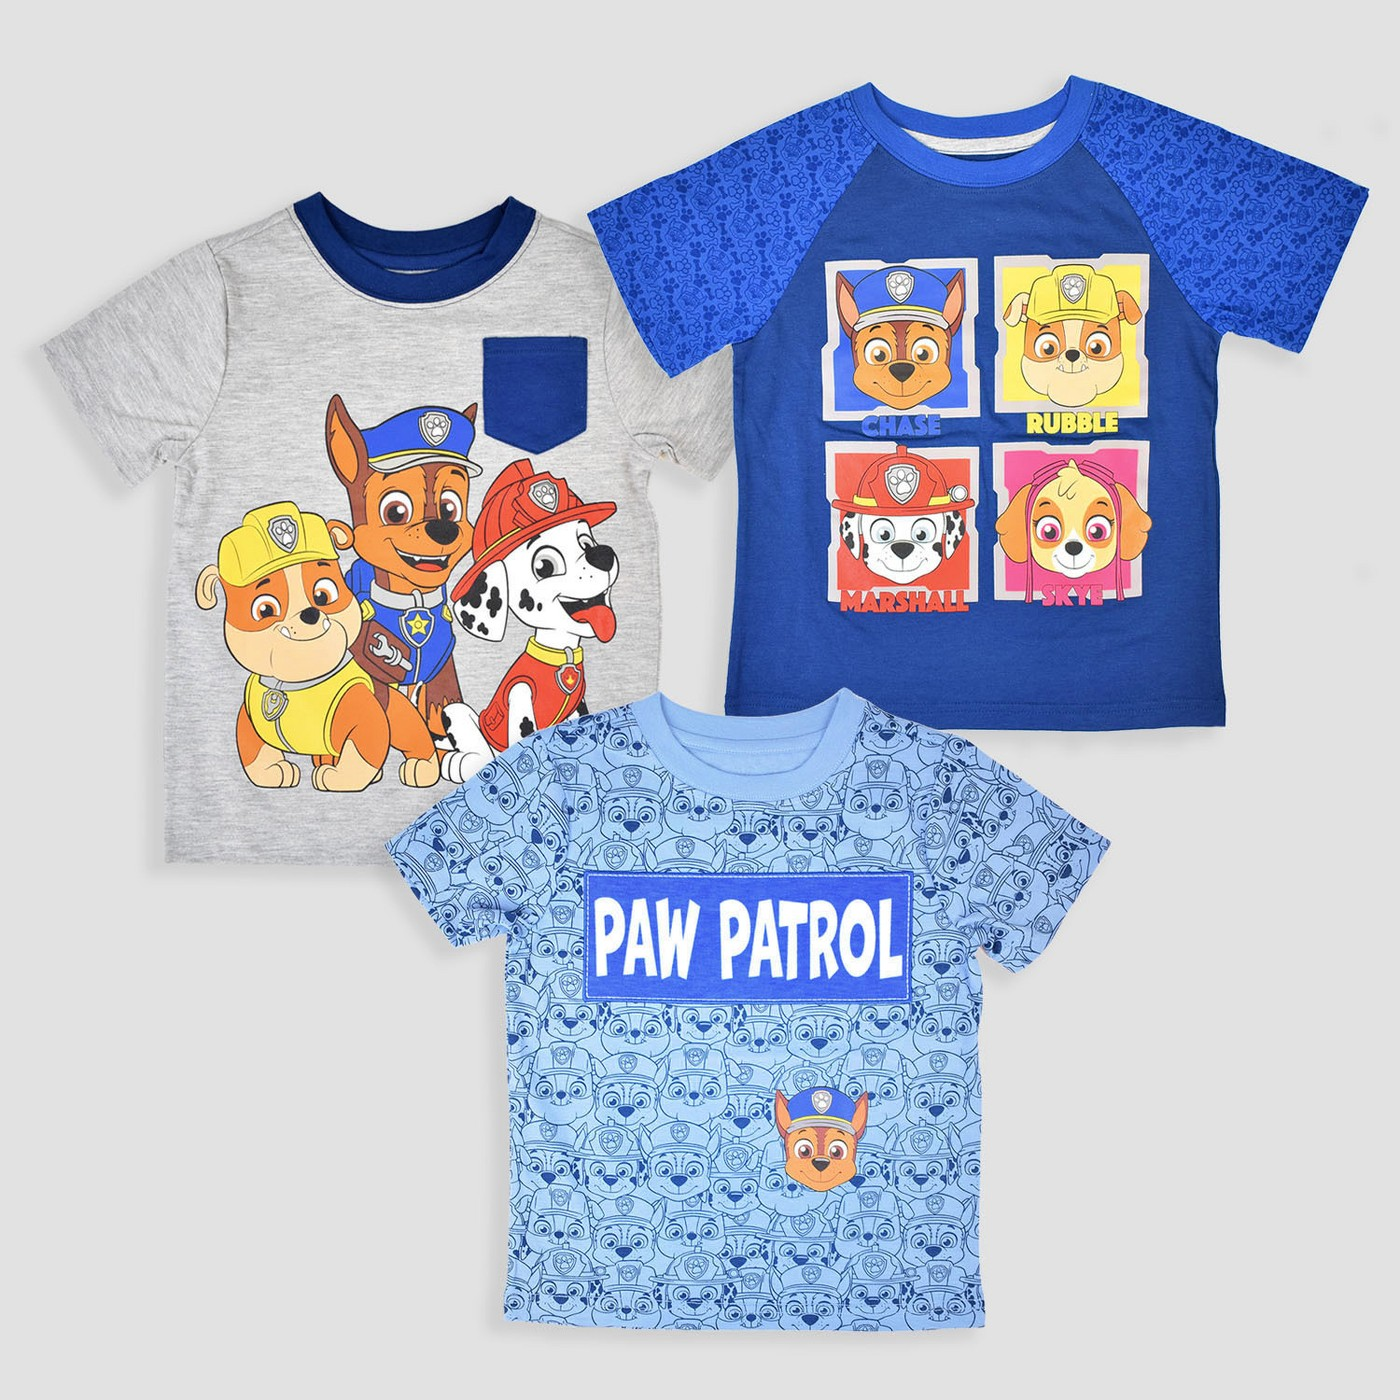 Toddler Boys' 3pk PAW Patrol Short Sleeve T-Shirt - Blue/Gray - image 1 of 4